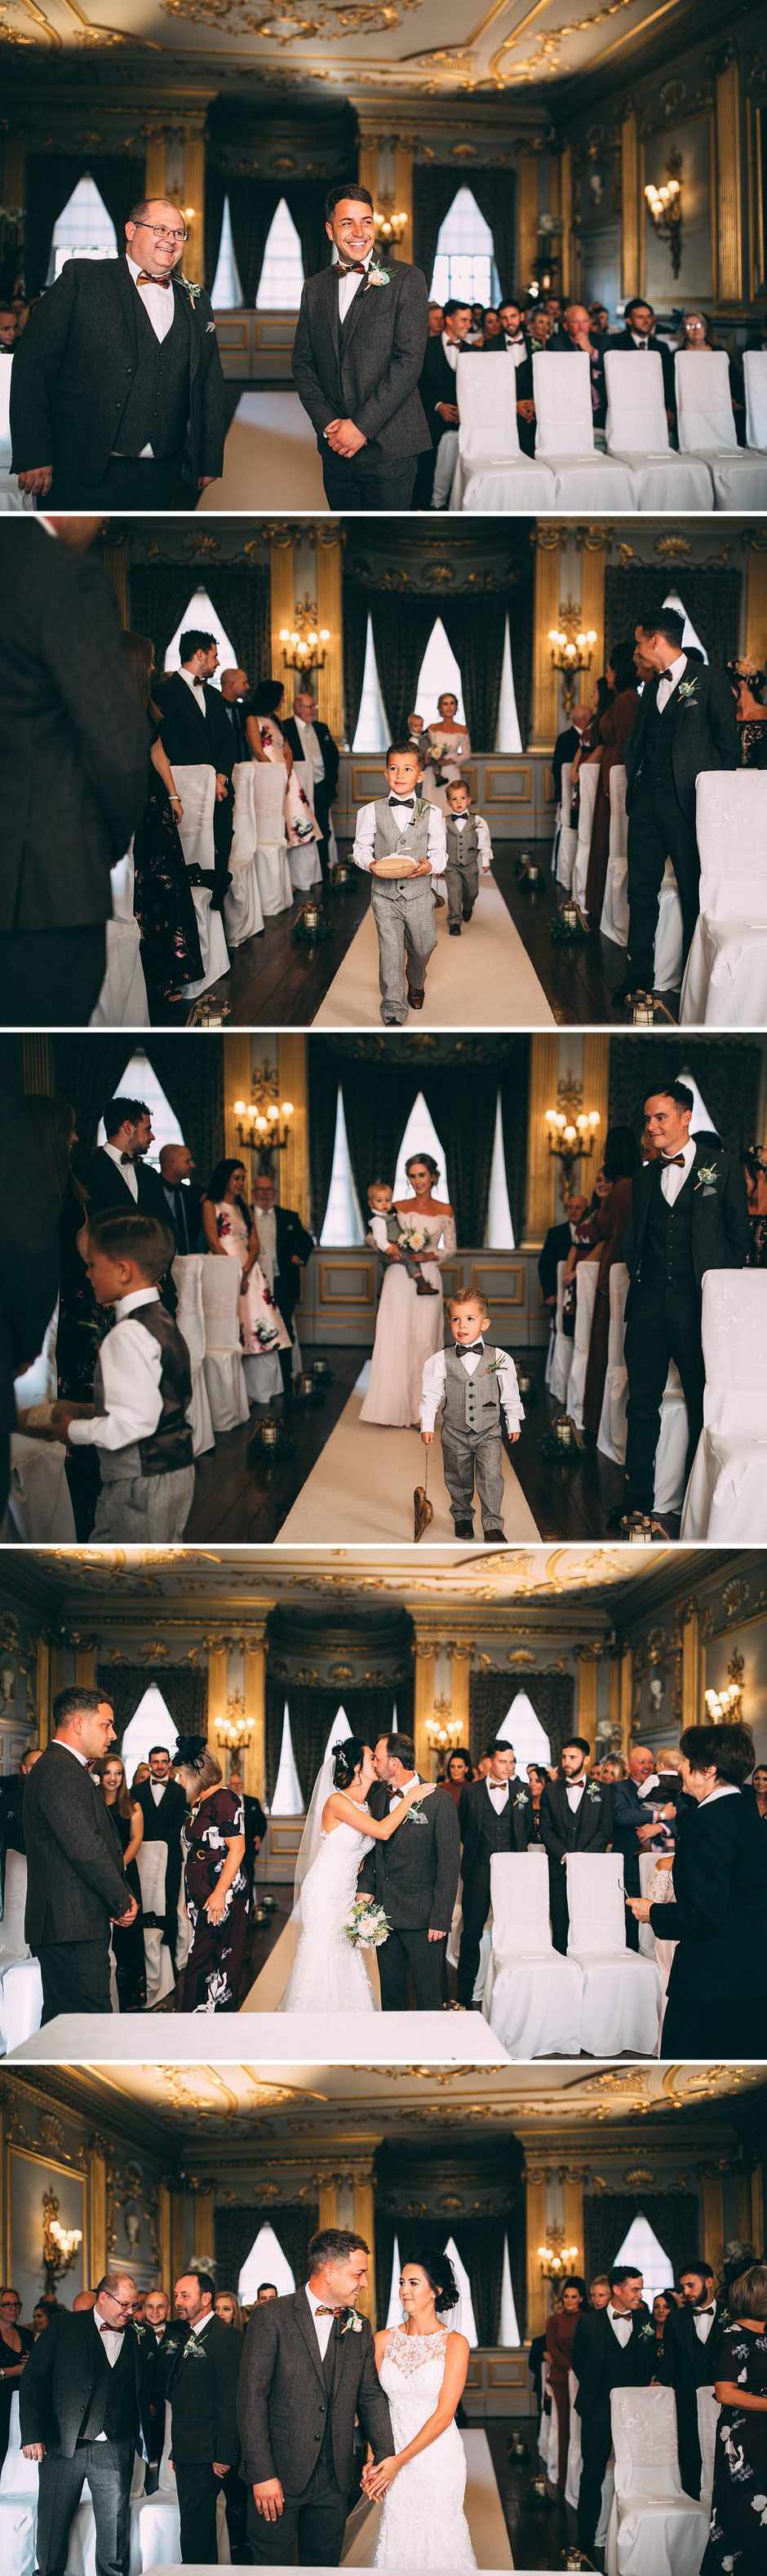 Candid photographs of a wedding ceremony at Knowsley hall